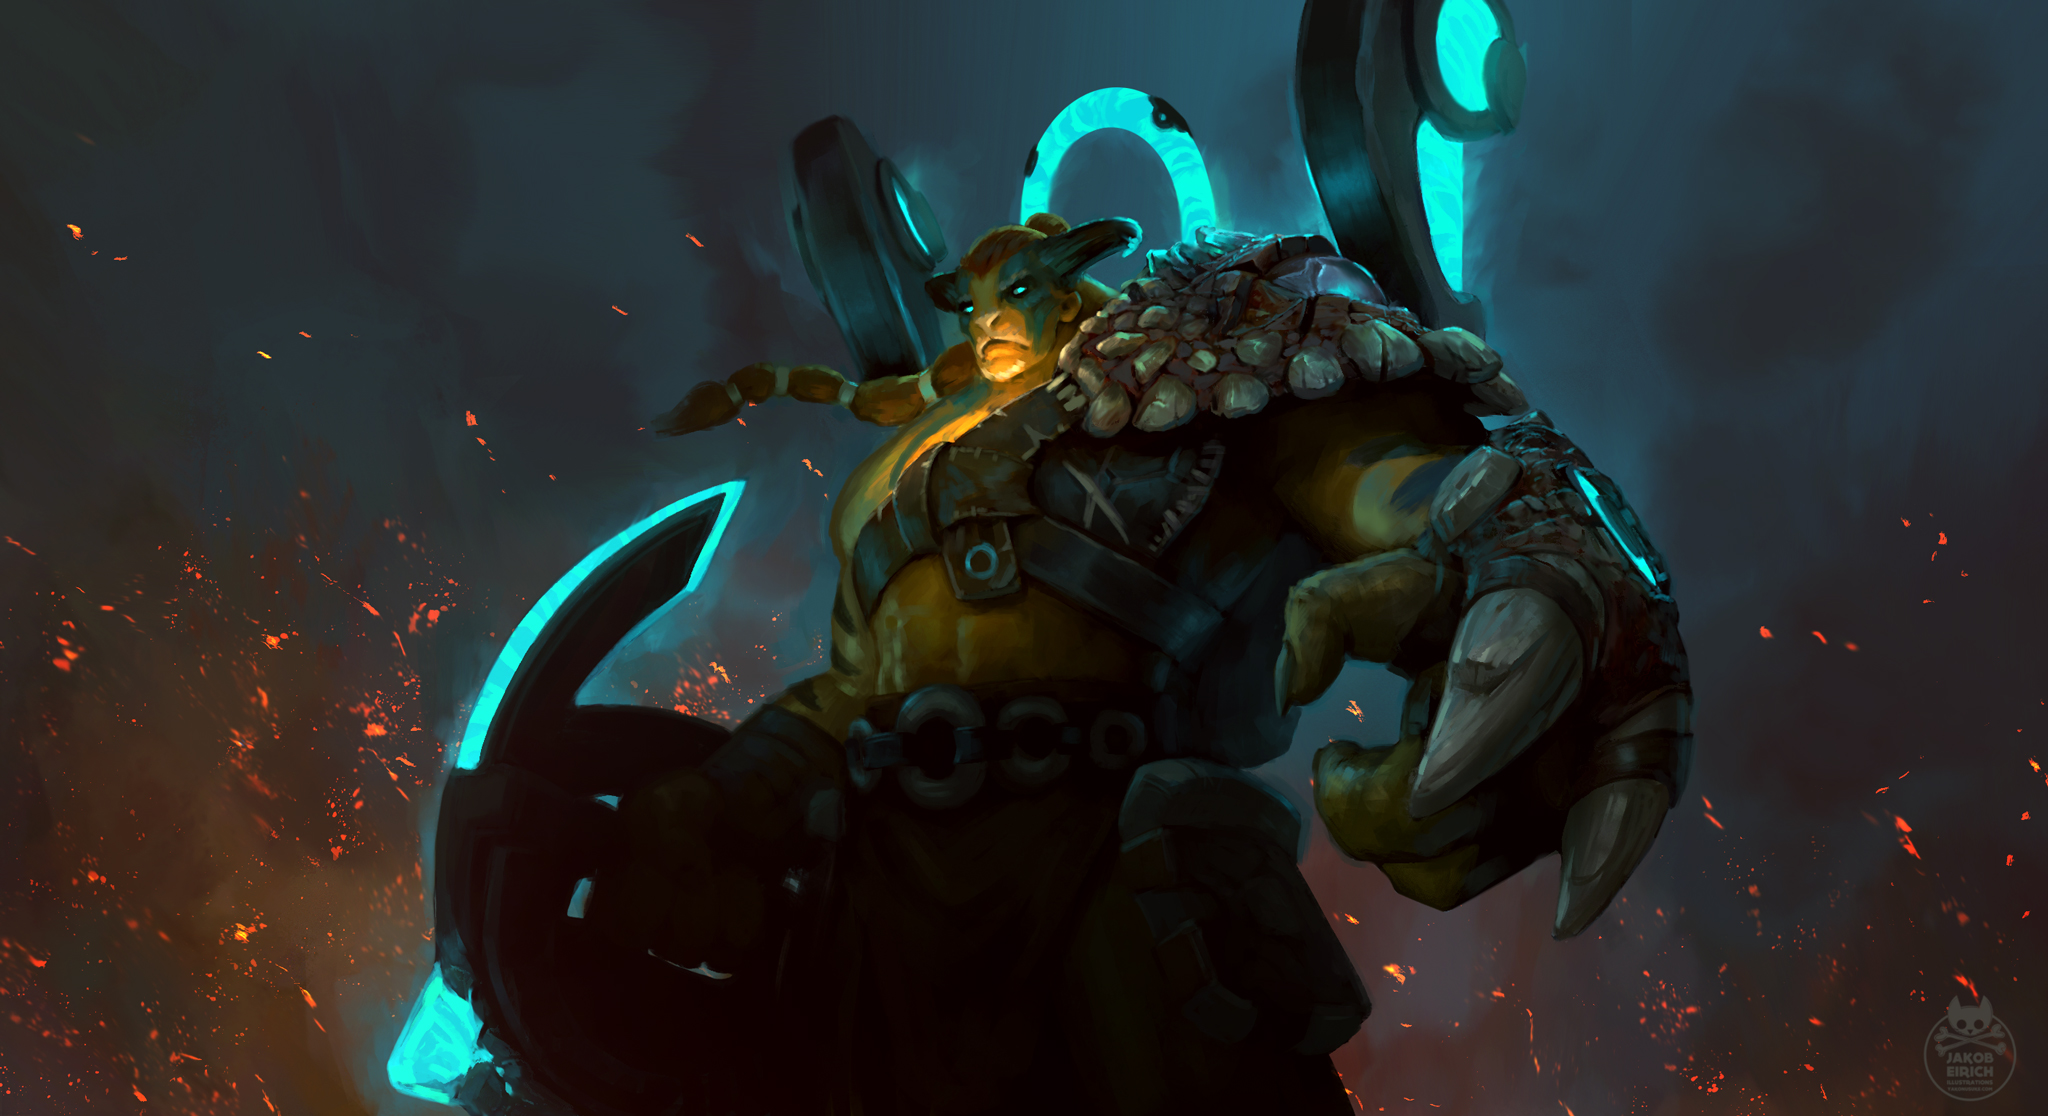 dota 2 store marketing art jakob eirich illustrator